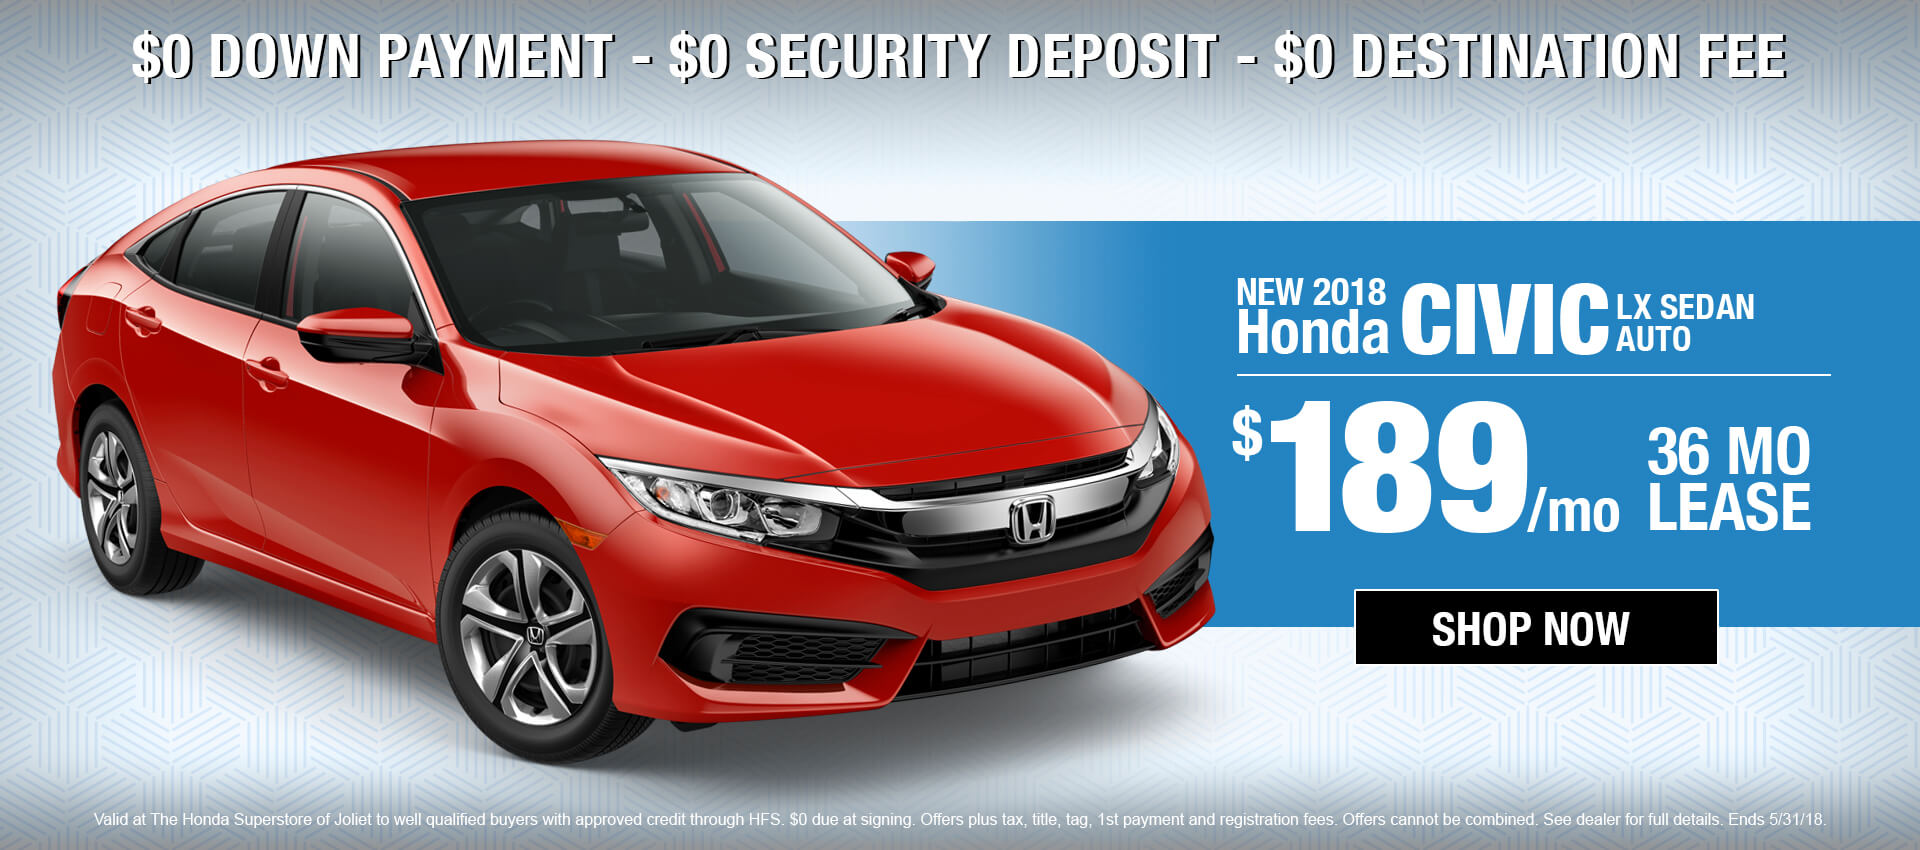 2018 Honda Civic $189